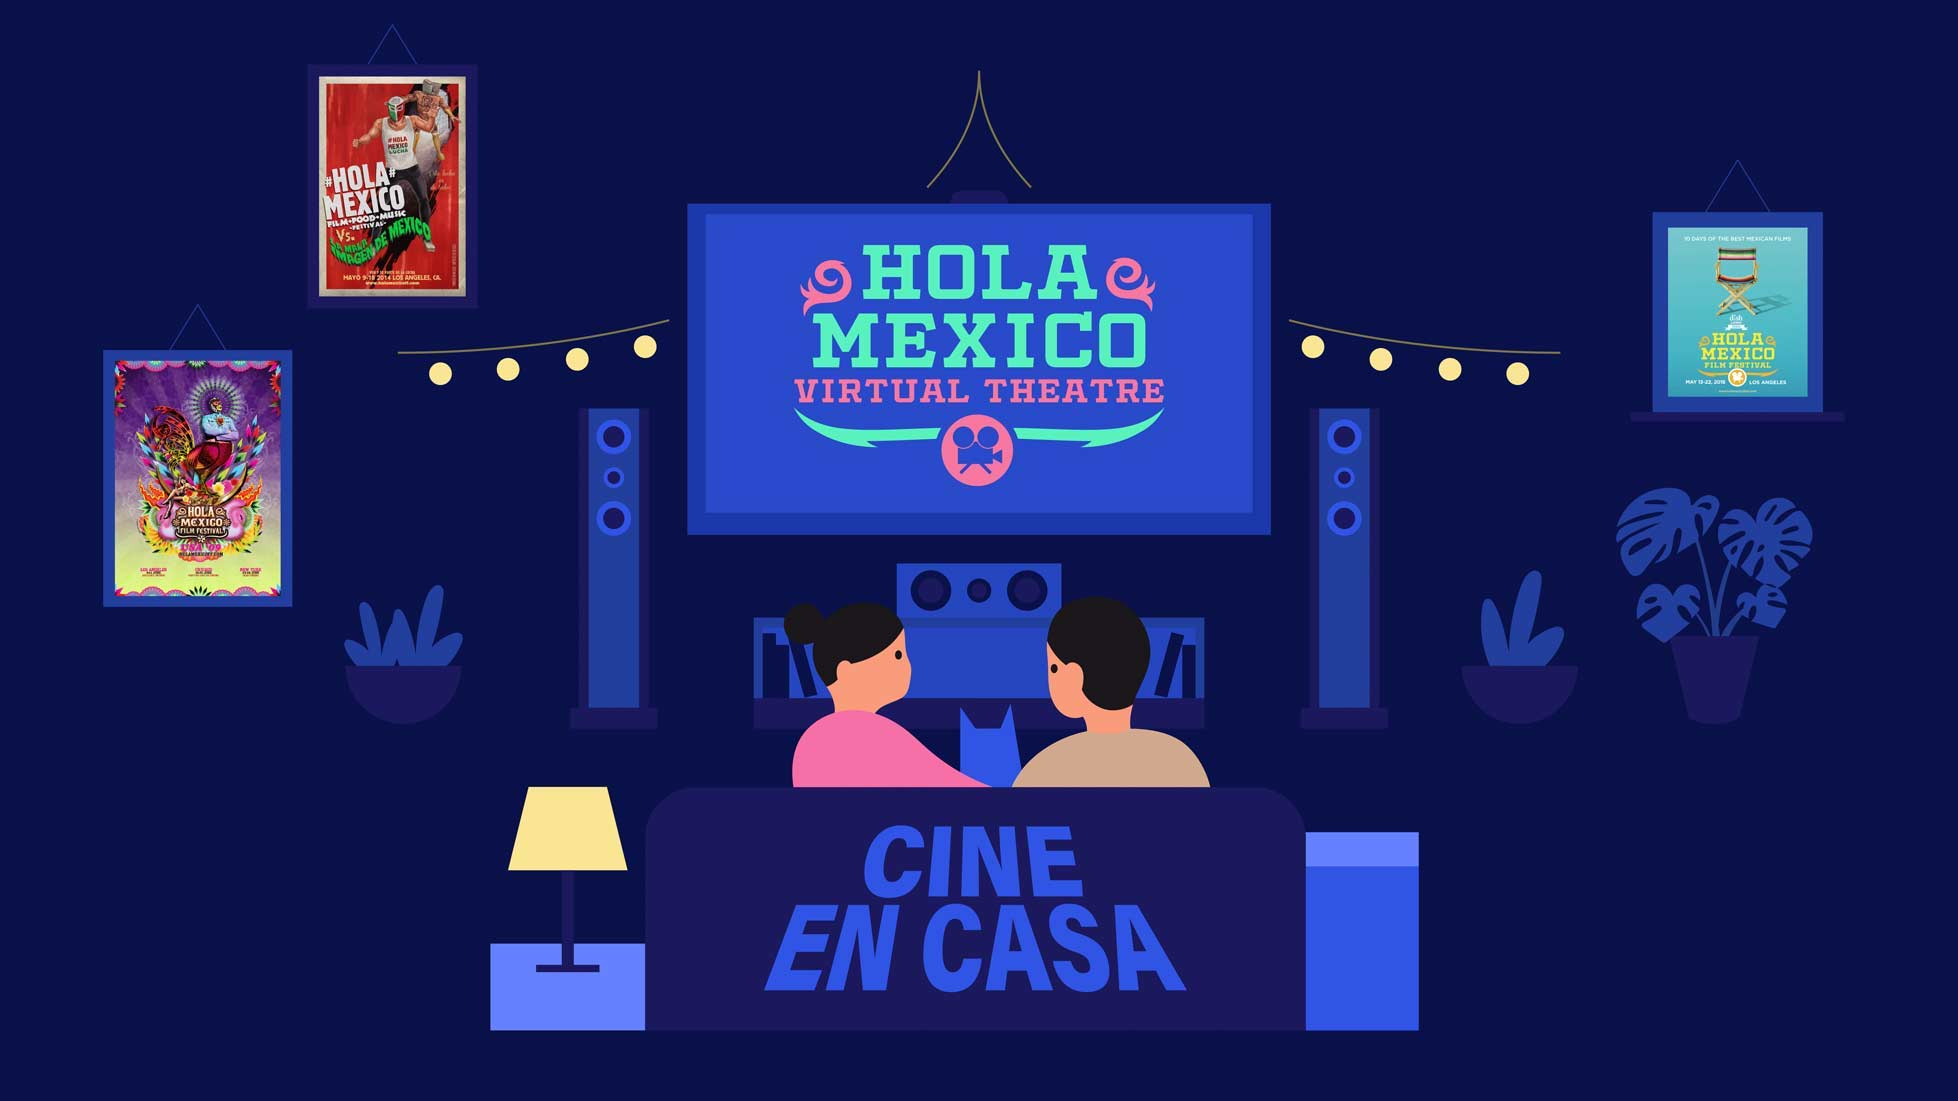 Hola Mexico Film Festival presents: Hola Mexico Virtual Theater – Film Daily